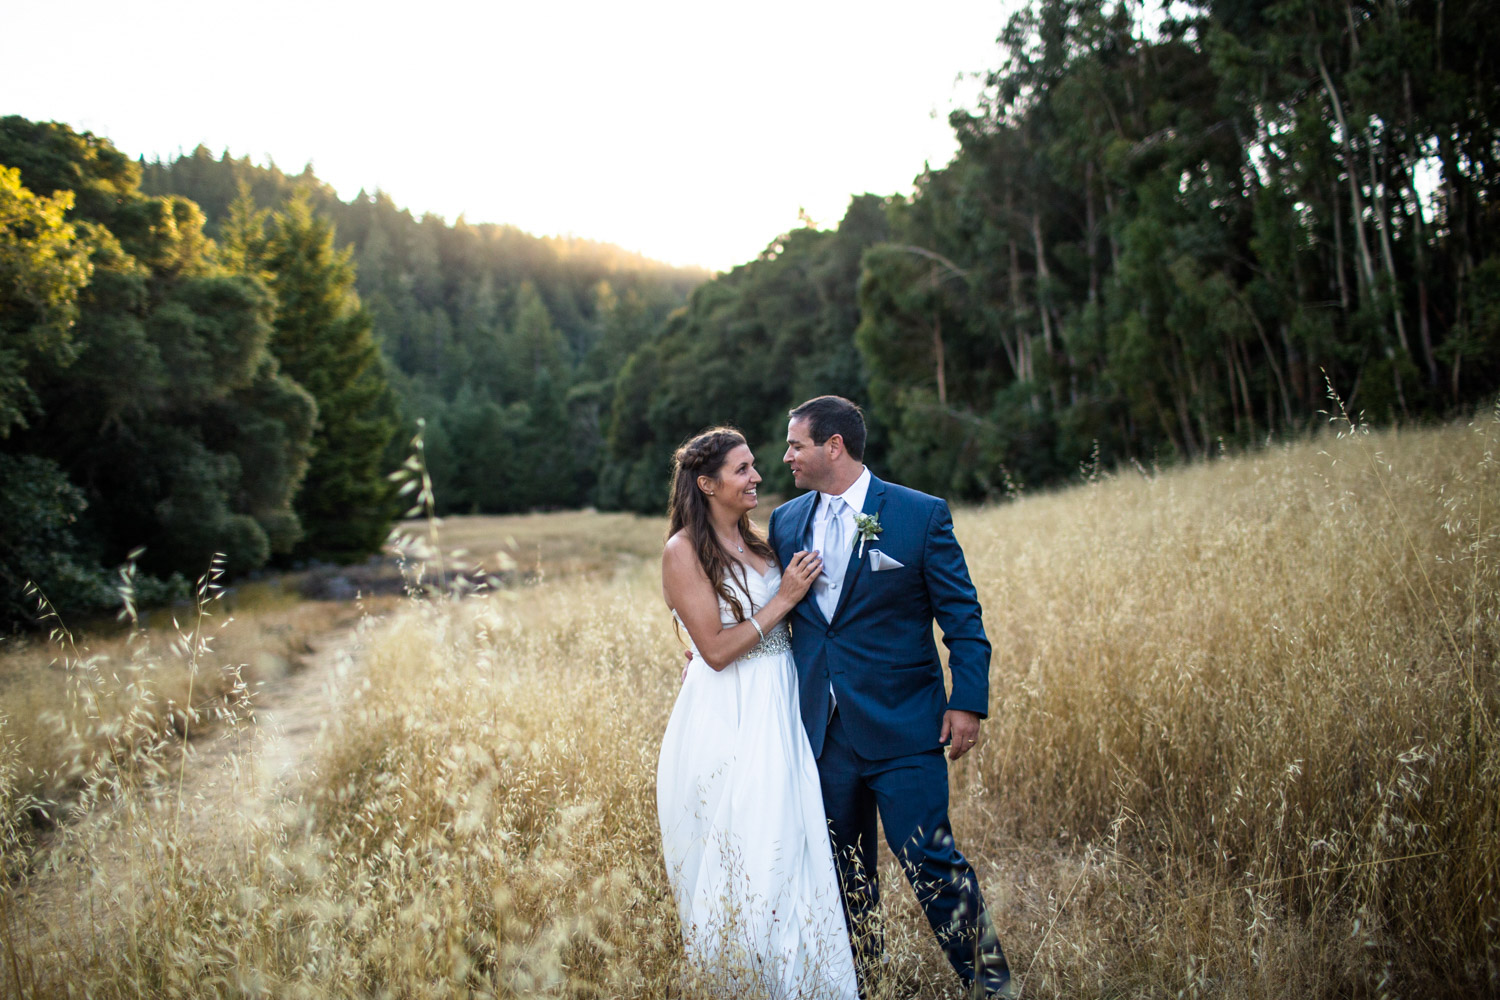 nevada-city-grass-valley-wedding-photographer-116.jpg